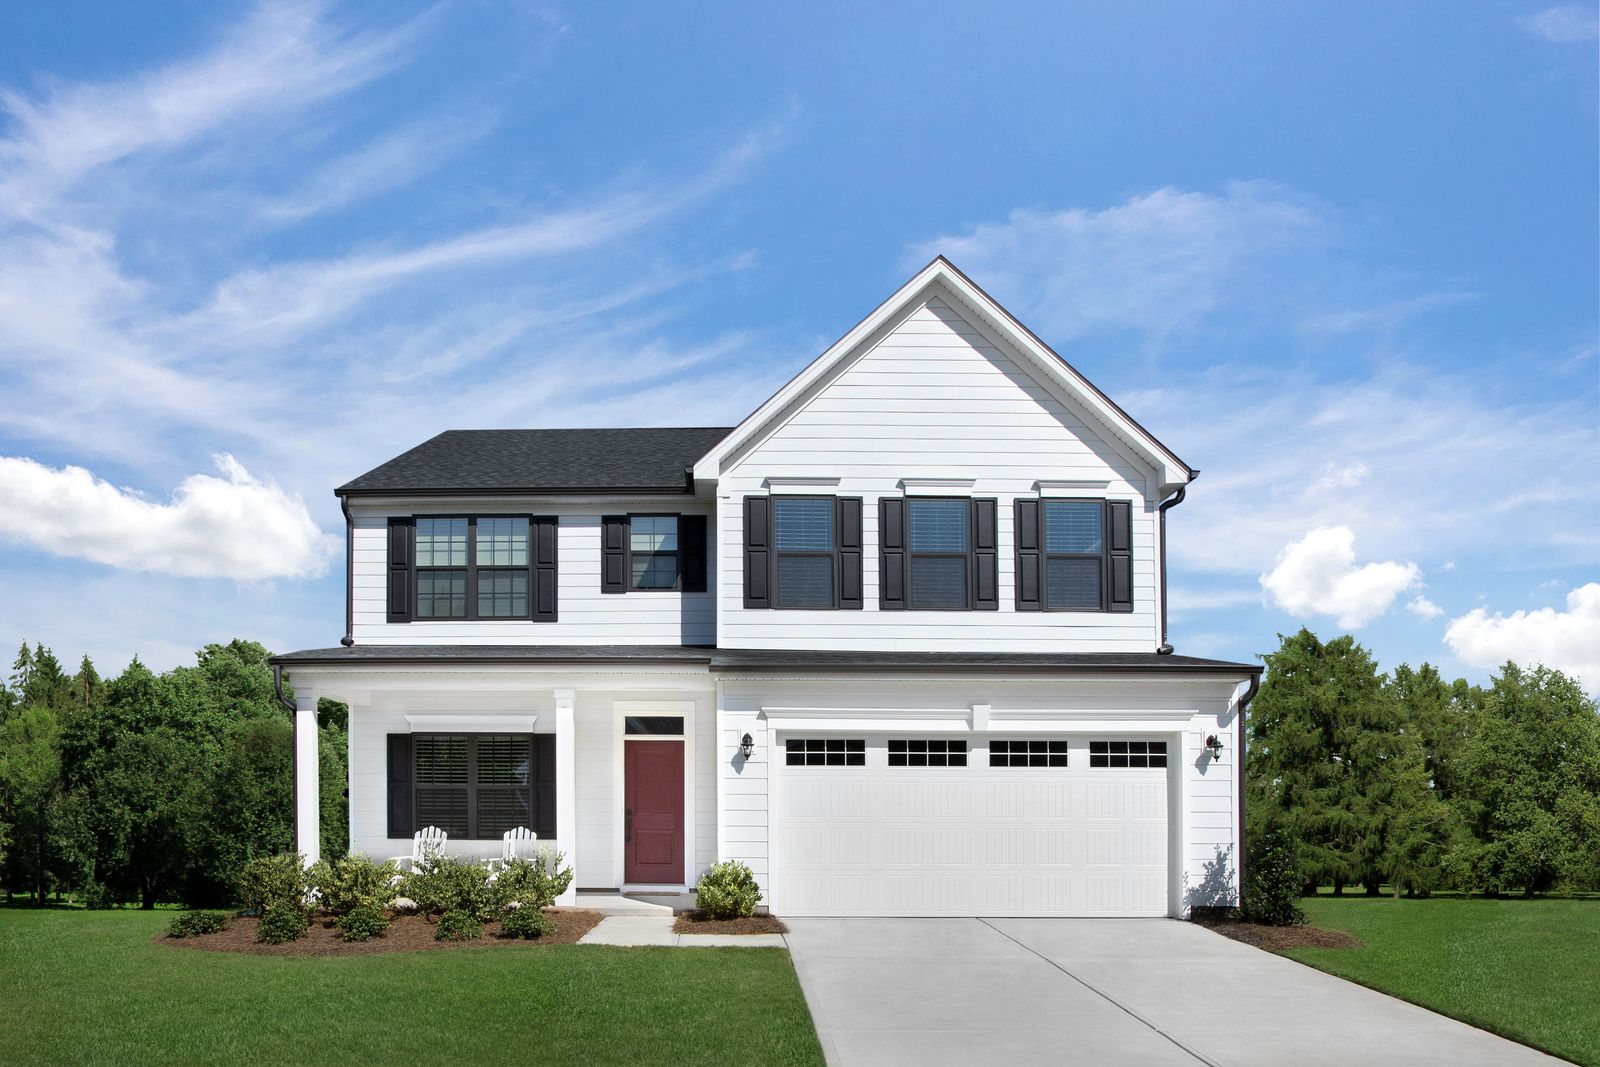 New Homes Backing To Trees and Including Many Upgraded Features:Build your dream home in Indian Trail - where you can have privacy and the upgraded features you want, all included.Click here to schedule a visit!